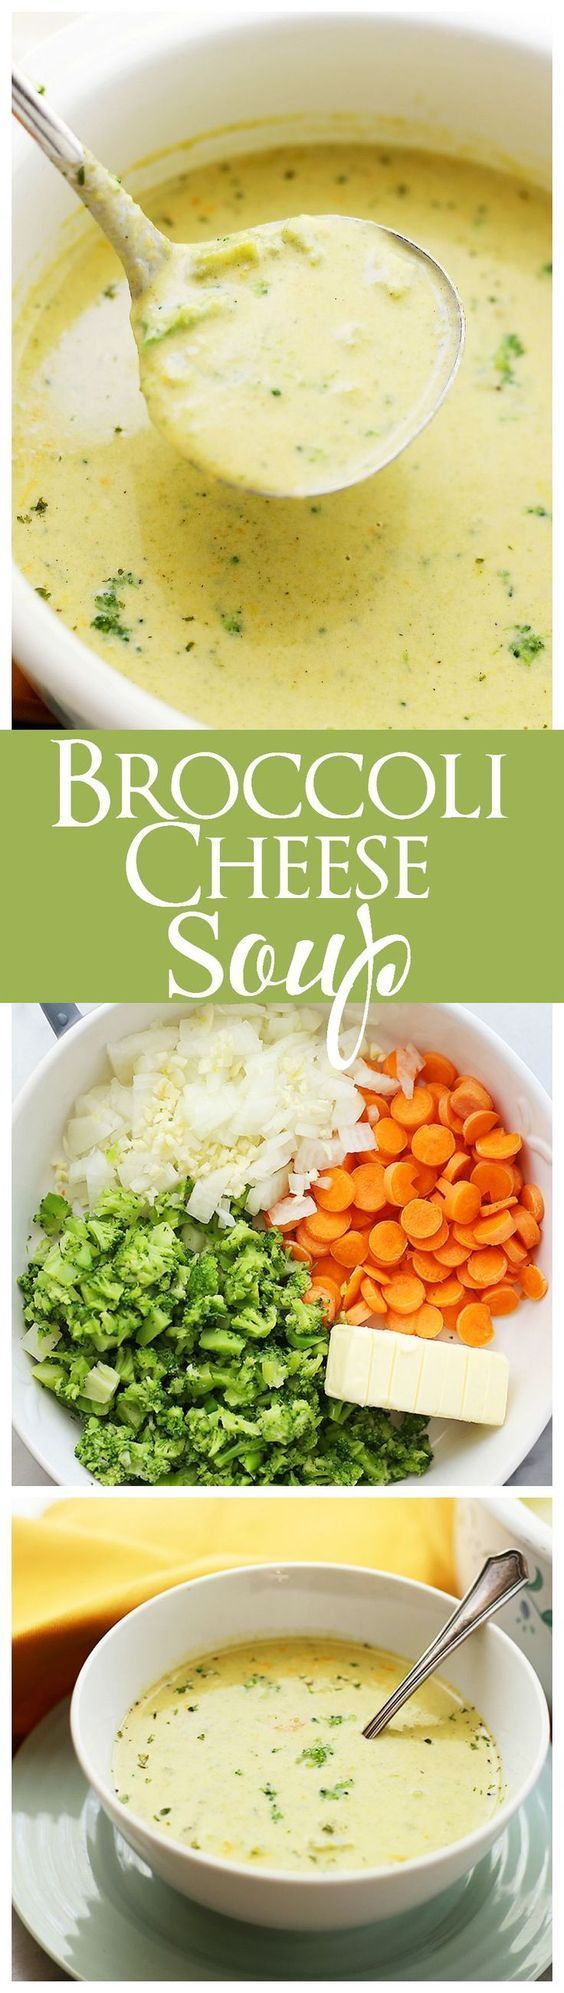 Broccoli Cheese Soup (Panera Copycat) | http://www.diethood.com | If you love Panera Bread's Broccoli Cheese Soup, you are going to be amazed with this copycat recipe!